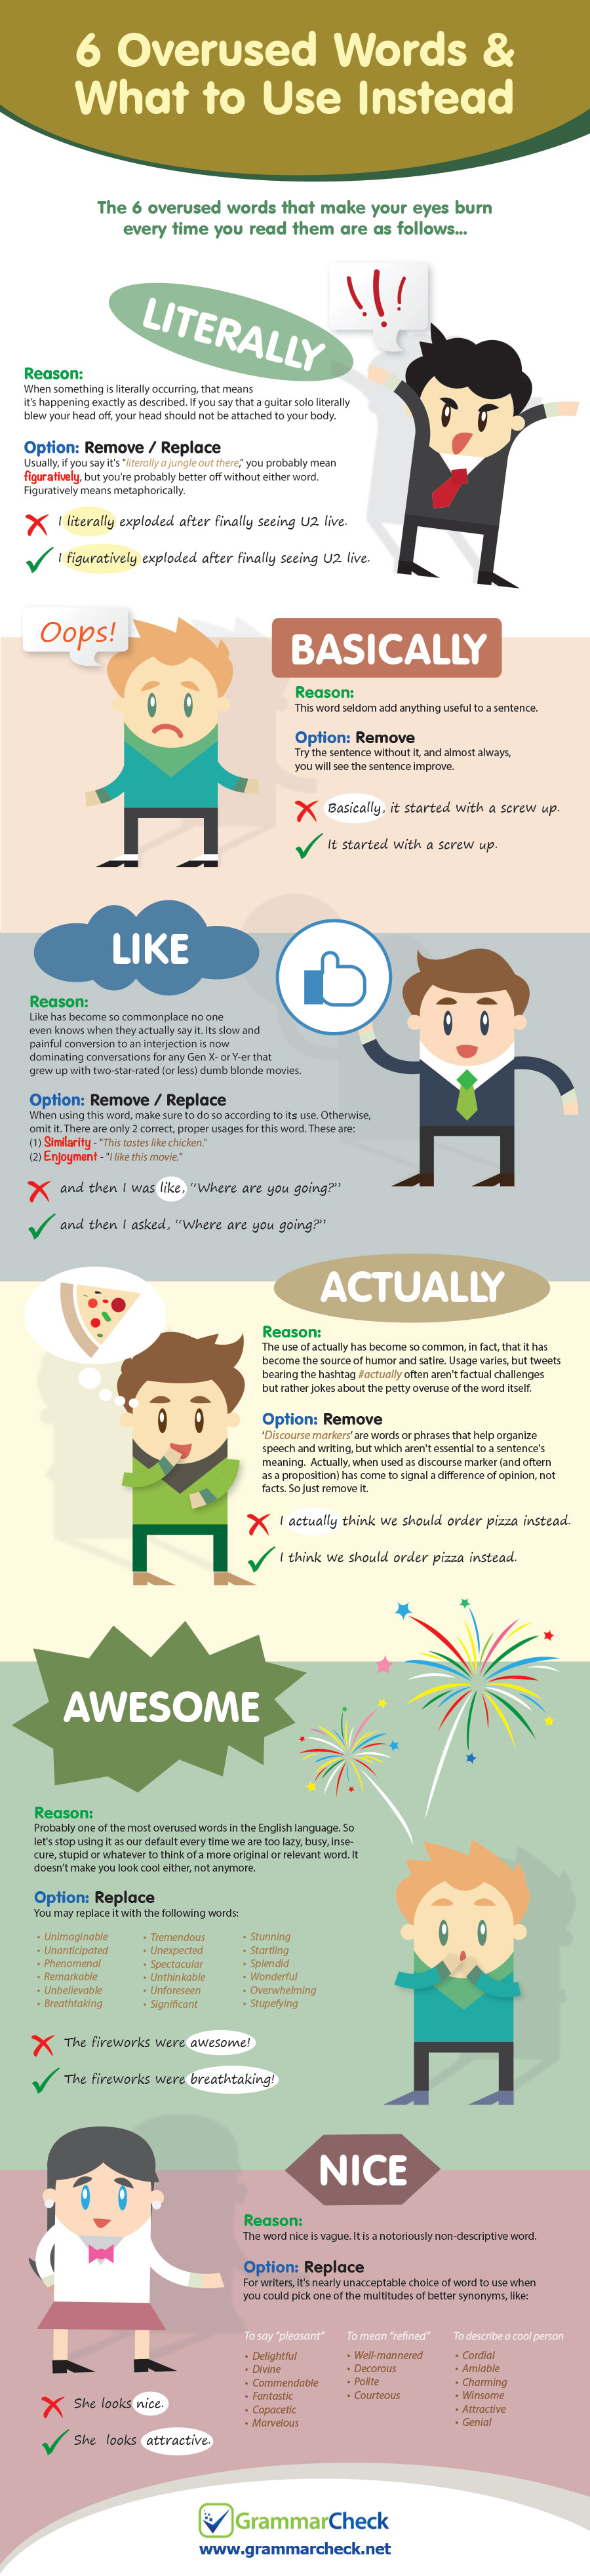 6 Overused Words & What to Use Instead (Infographic)